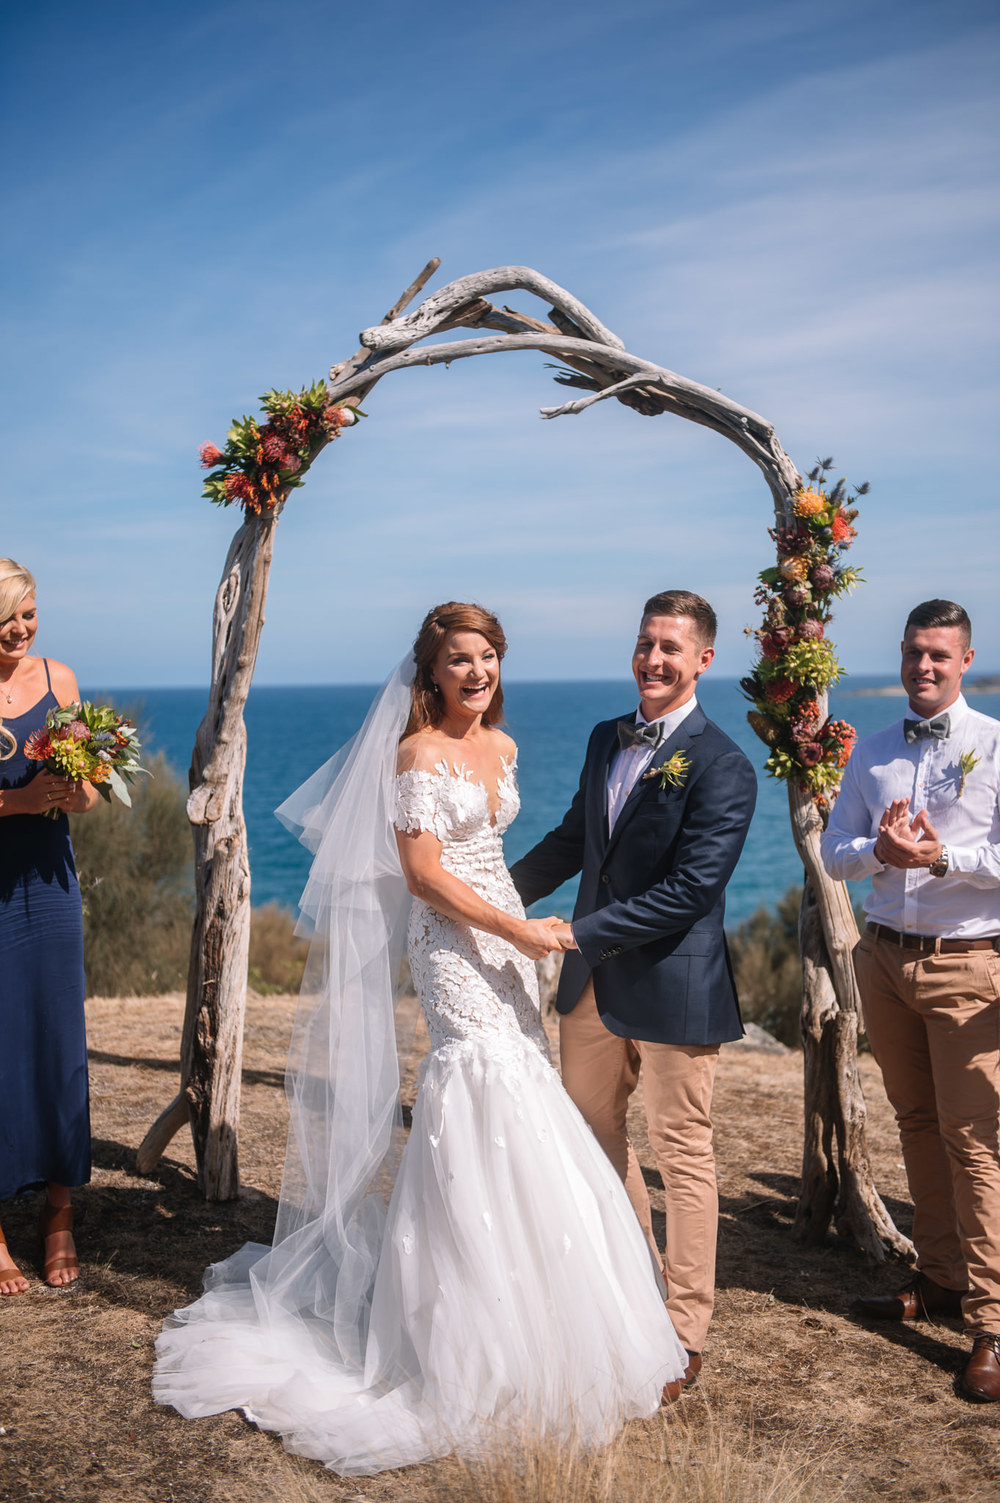 Coastal wedding under an arch of locally found driftwood